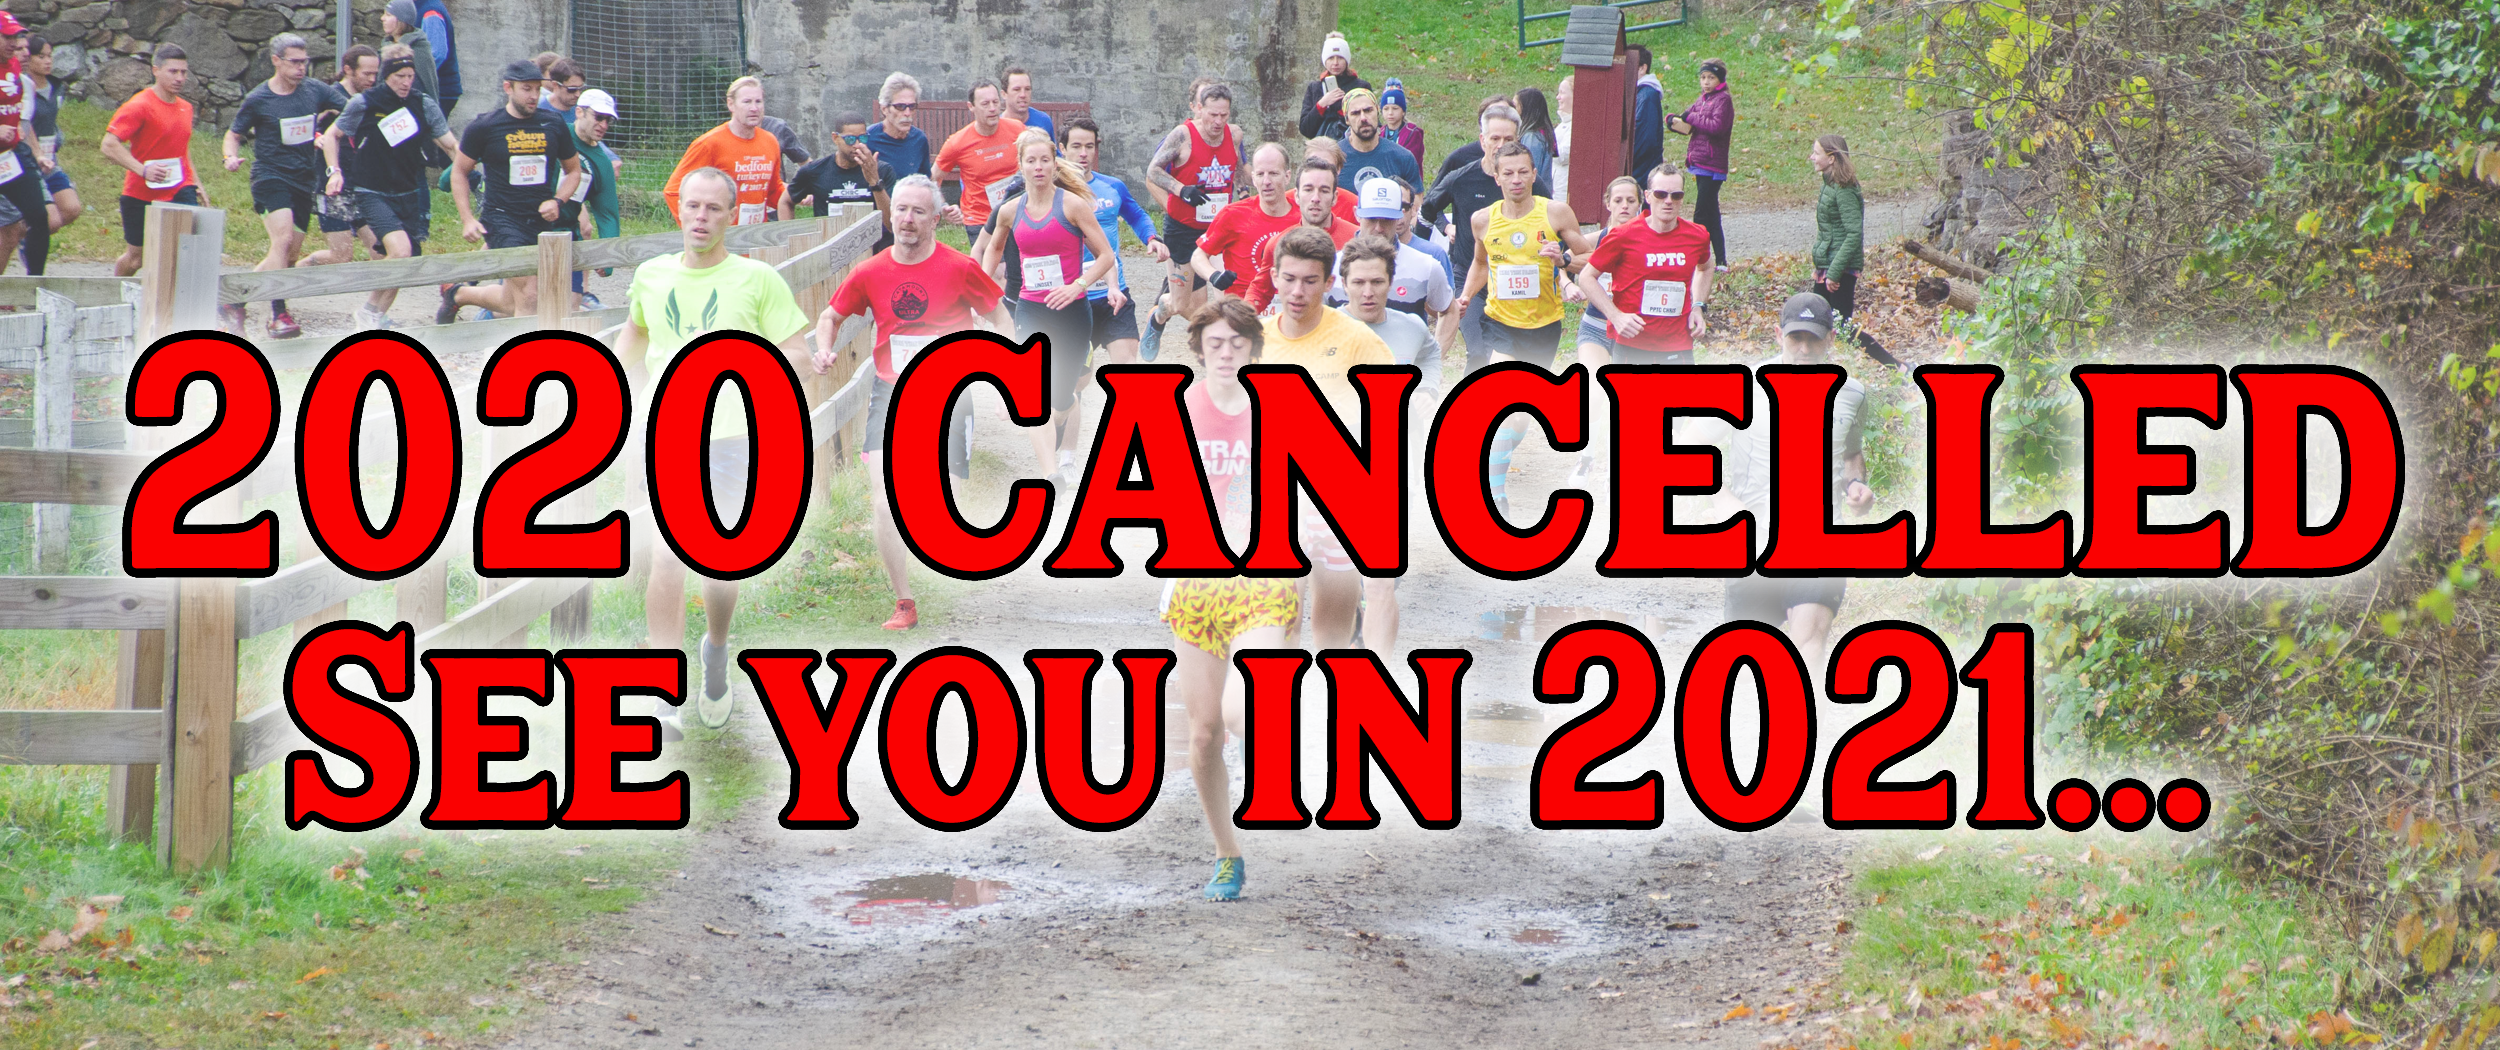 Run The Farm 2020 Cancellation Announcement